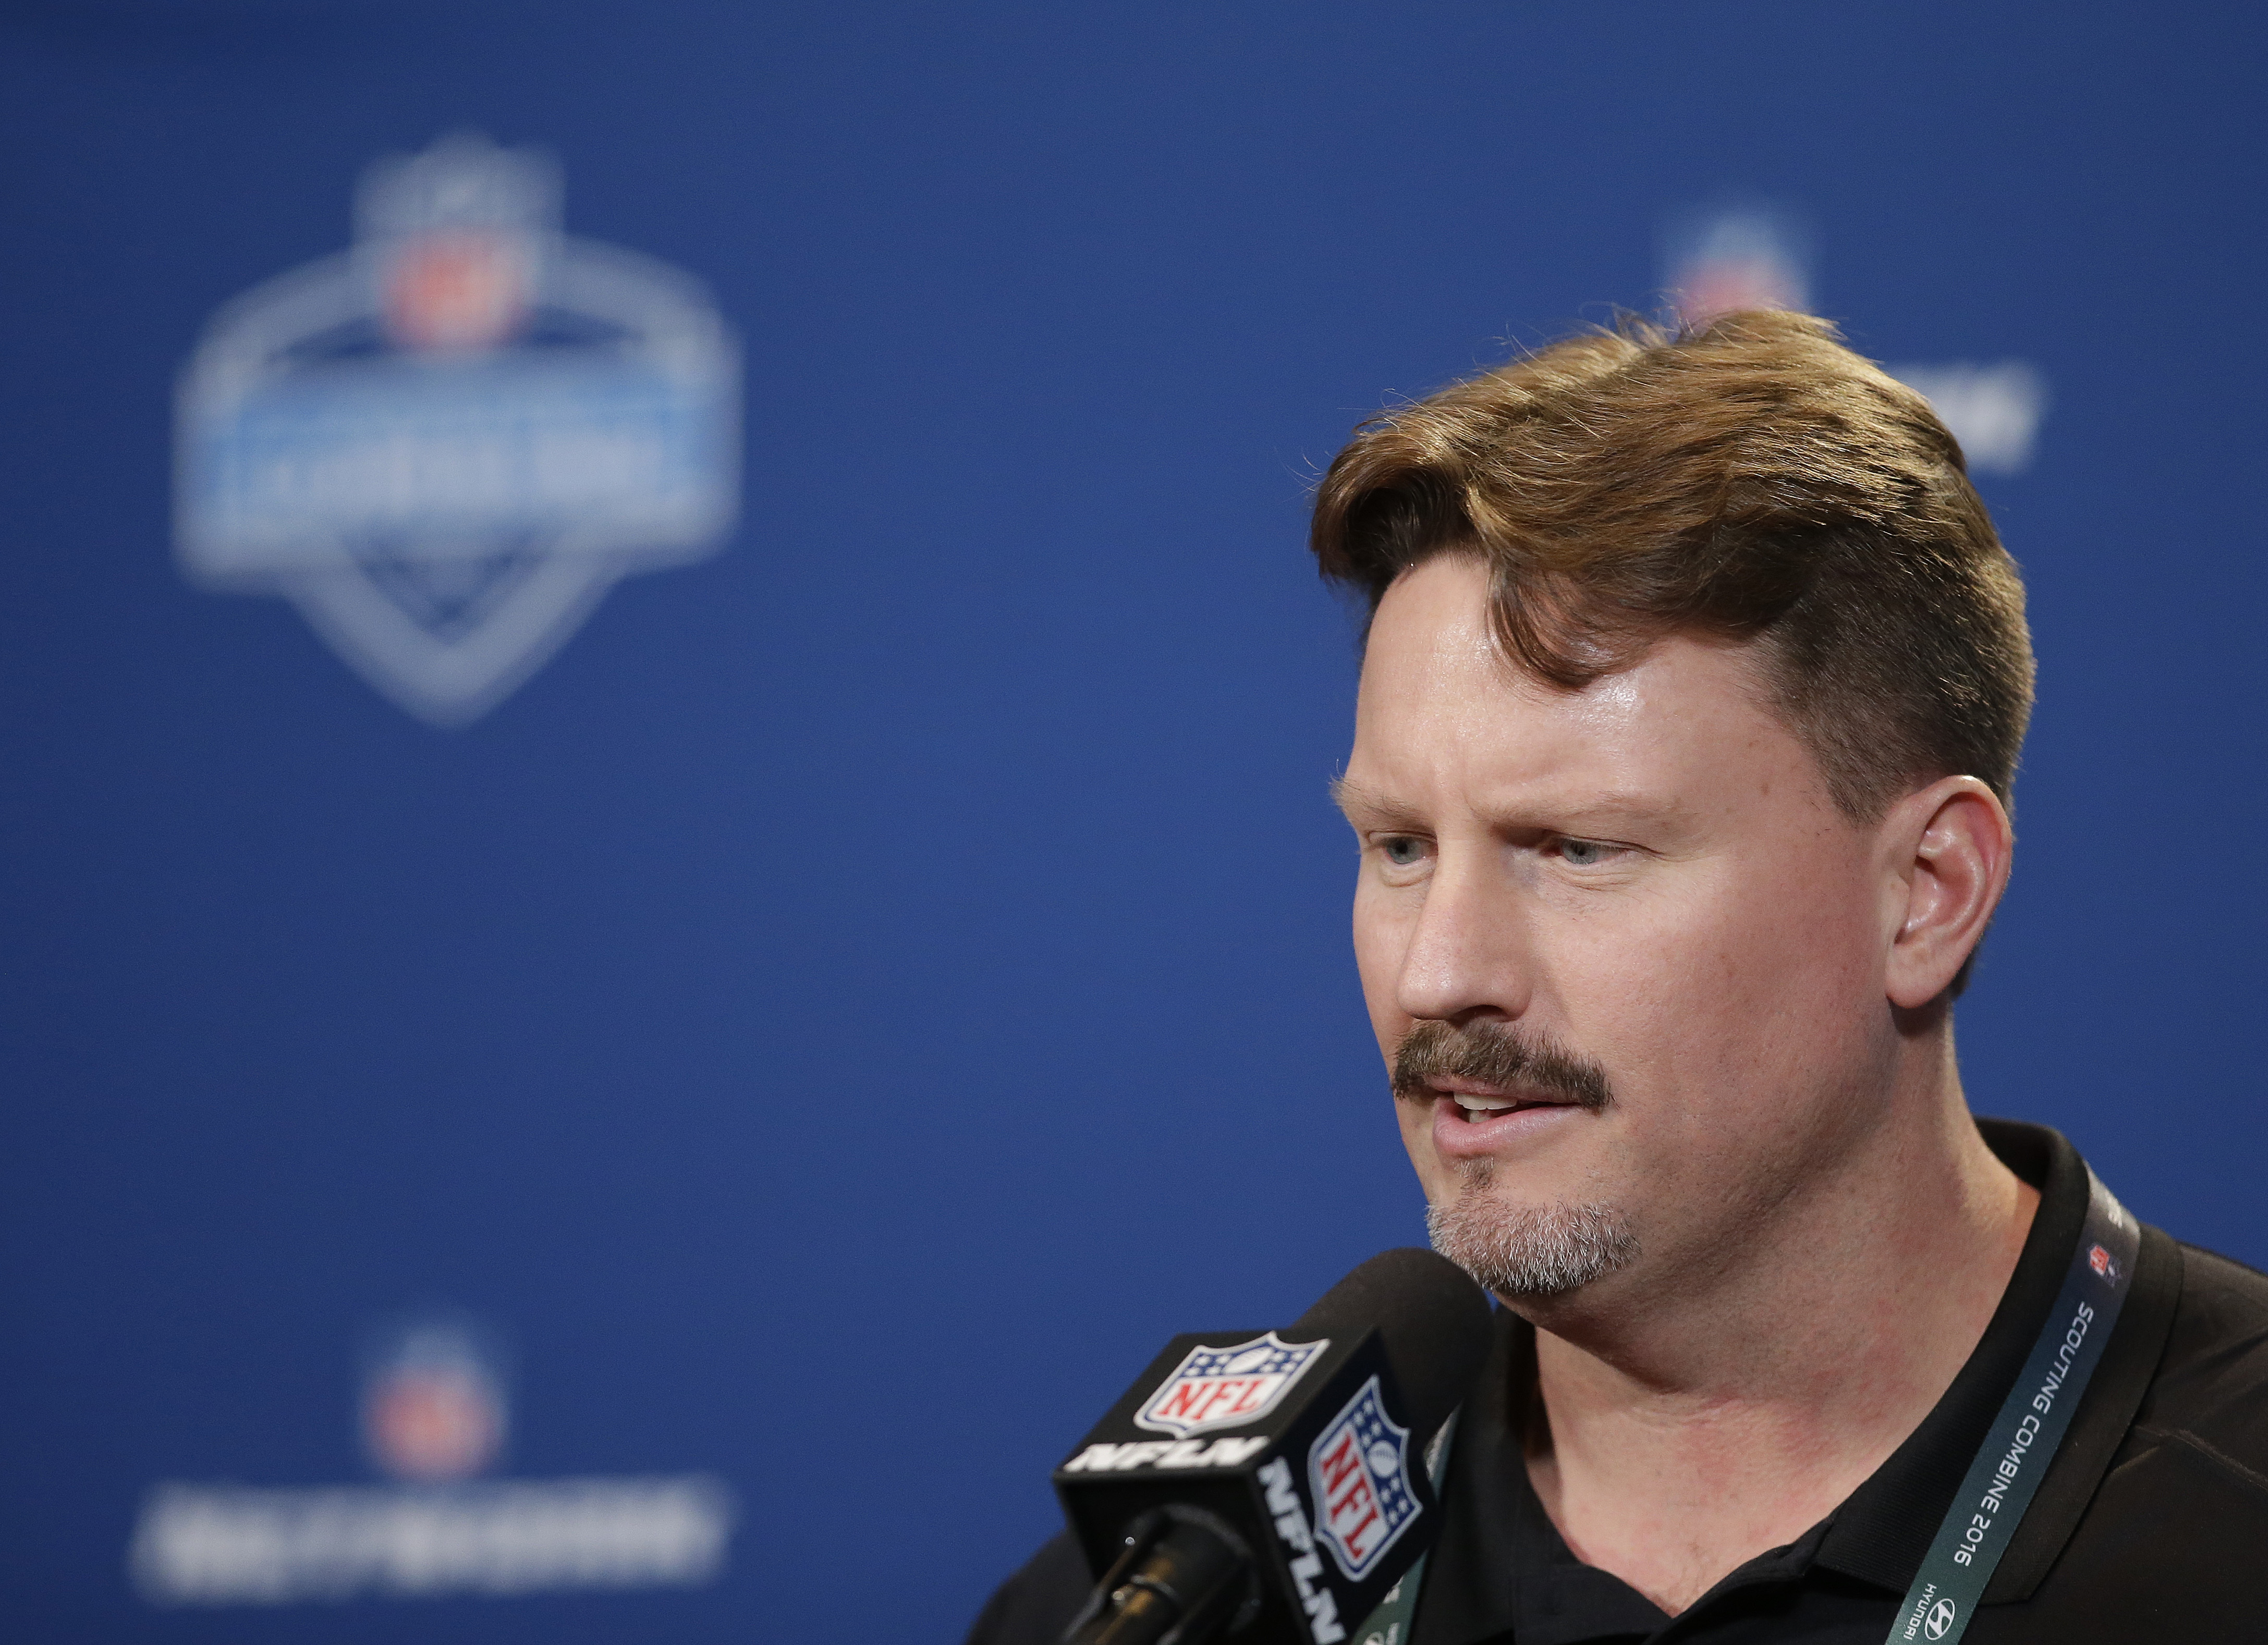 New York Giants head coach Ben McAdoo responds to a question during a news conference at the NFL football scouting combine Wednesday, Feb. 24, 2016, in Indianapolis.  (AP Photo/Darron Cummings)